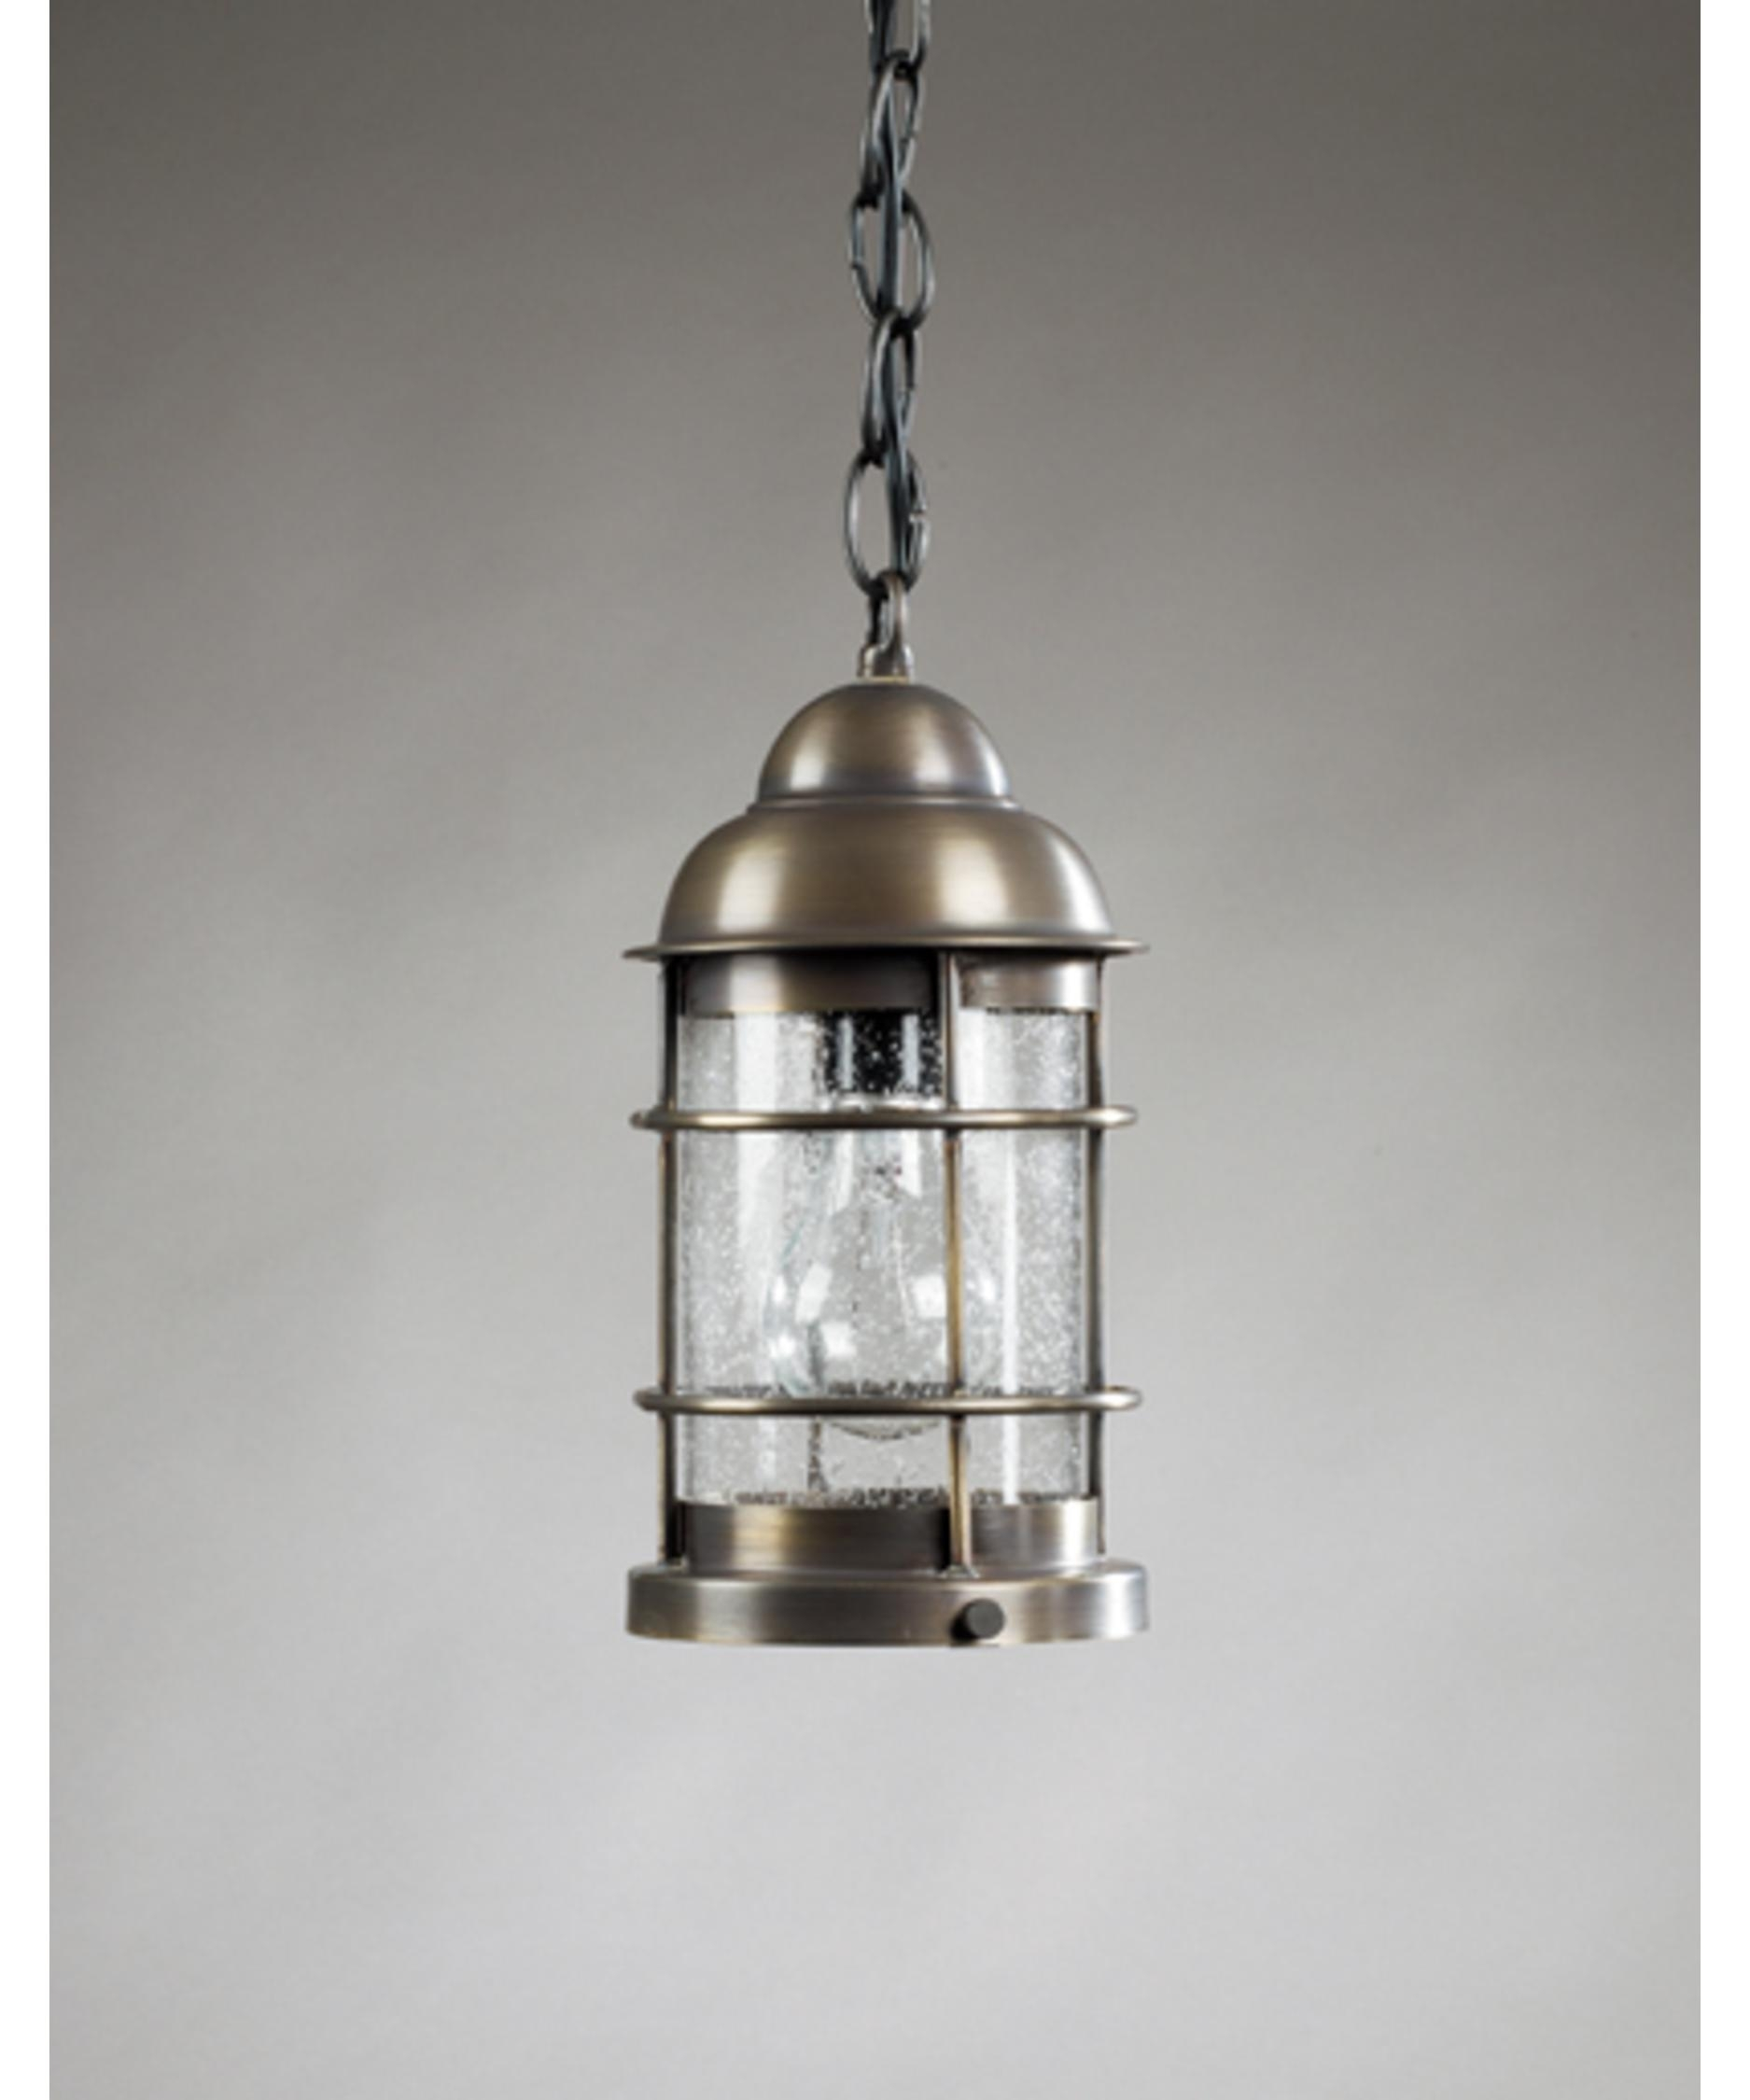 72 Examples Enjoyable Unique Lantern Pendant Light Fixture Kitchen Inside Indoor Outdoor Hanging Lights (#1 of 15)